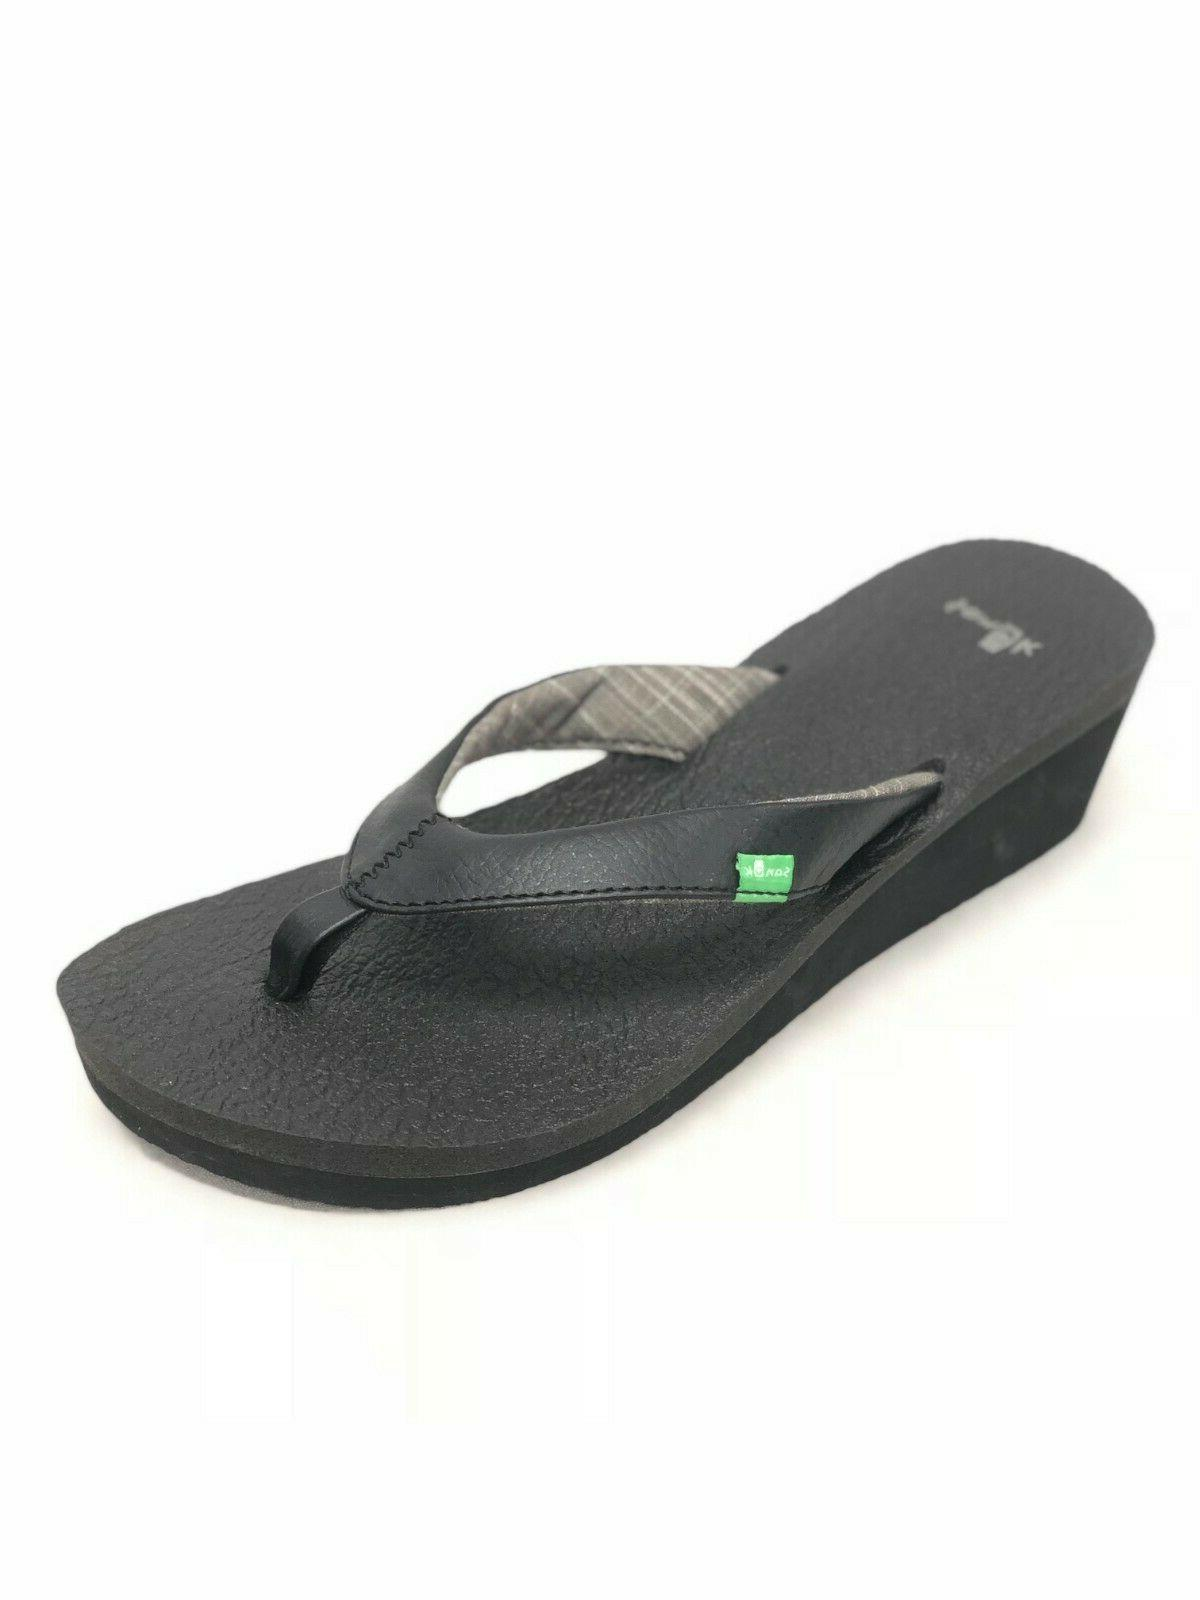 Sanuk Women's Yoga Mat Wedge Flip Flops Sandals Black SWS305